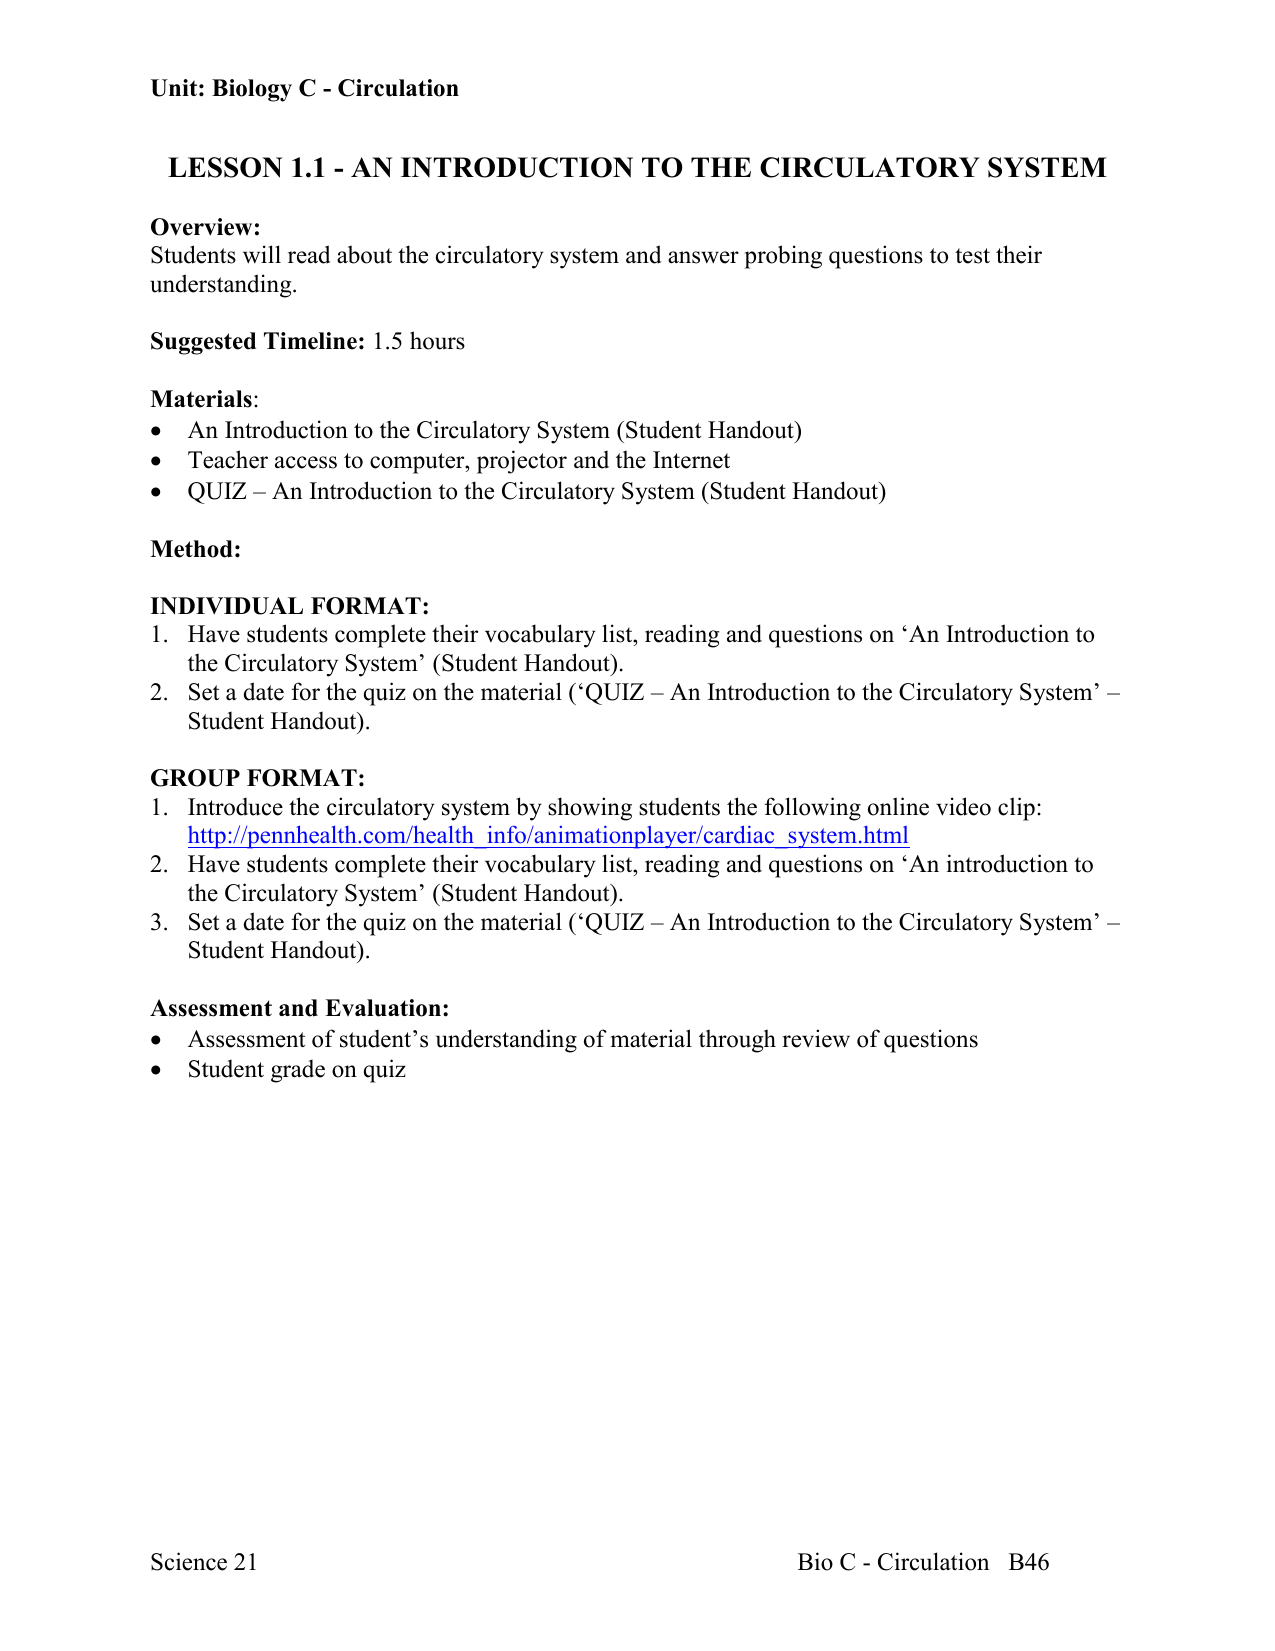 Overview Of The Circulatory System Worksheet Answer Key